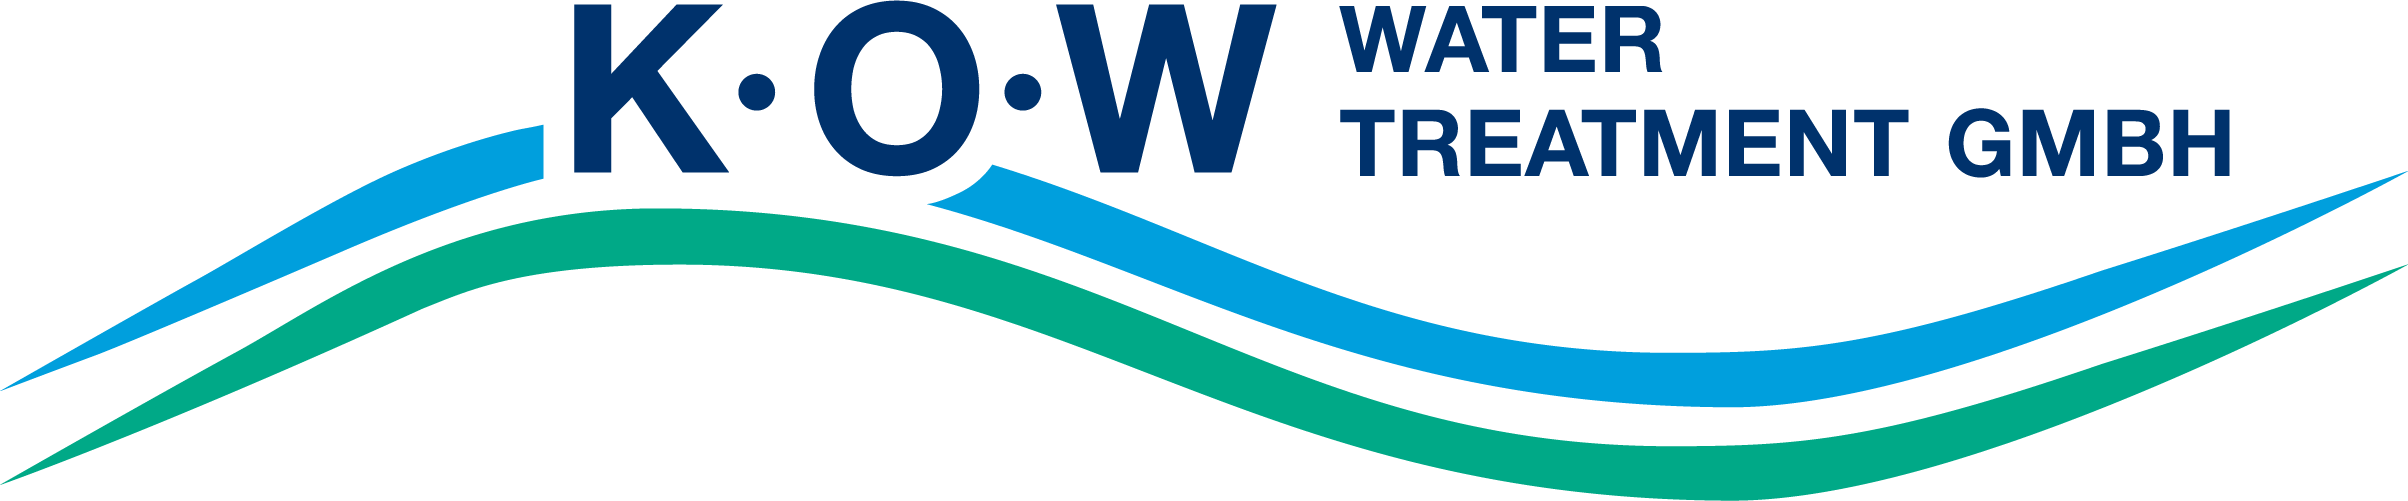 Click here to visit the website of KOW Water Treatment GmbH.